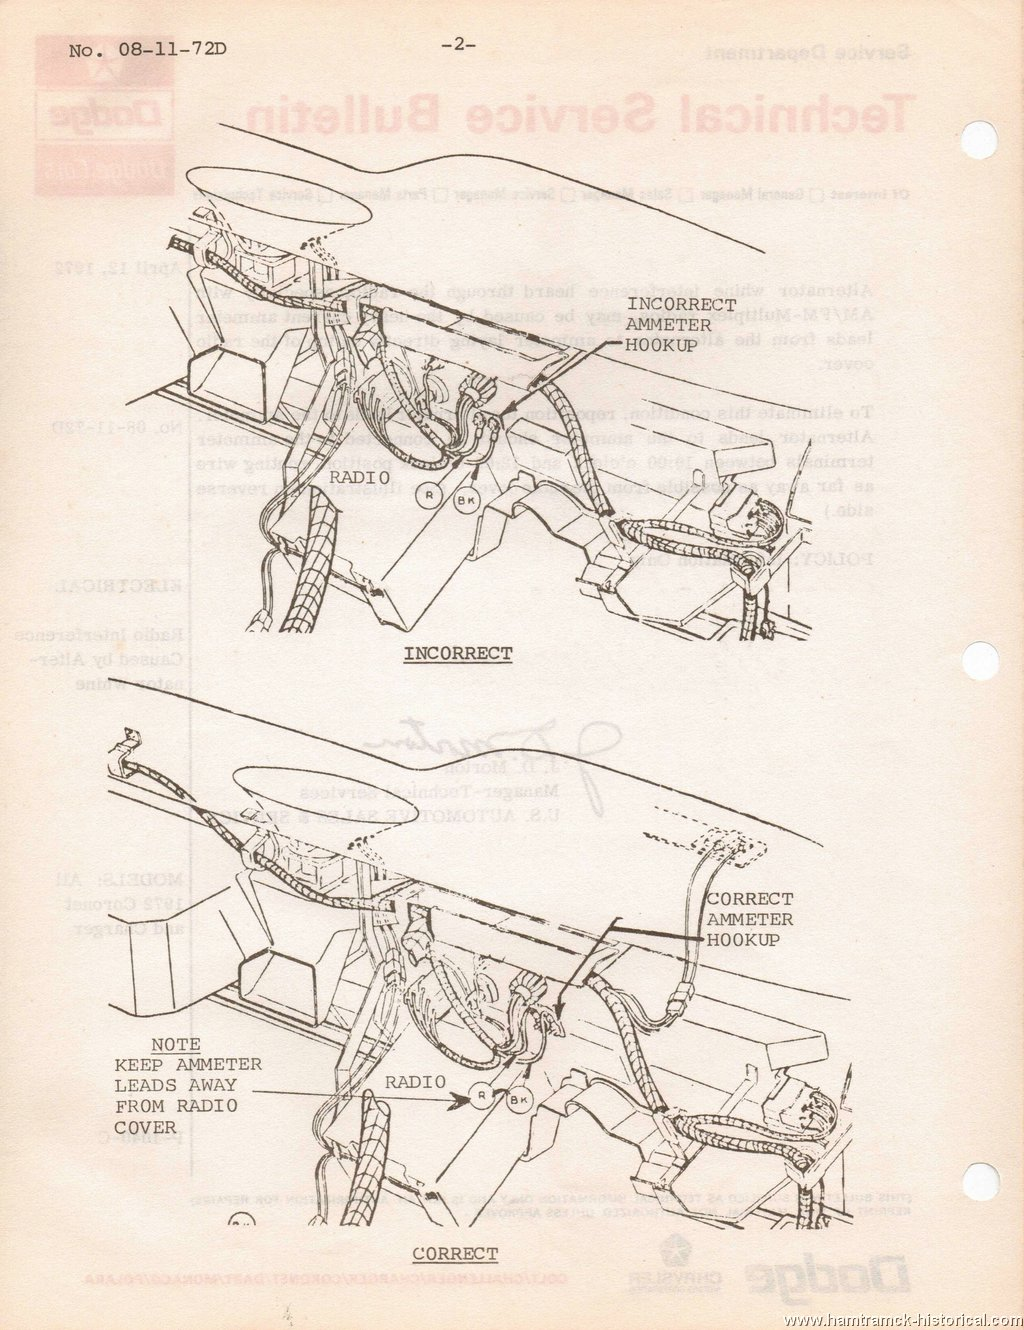 1970 dodge dart ignition wiring diagram how to wire a transfer switch for generator 72 get free image